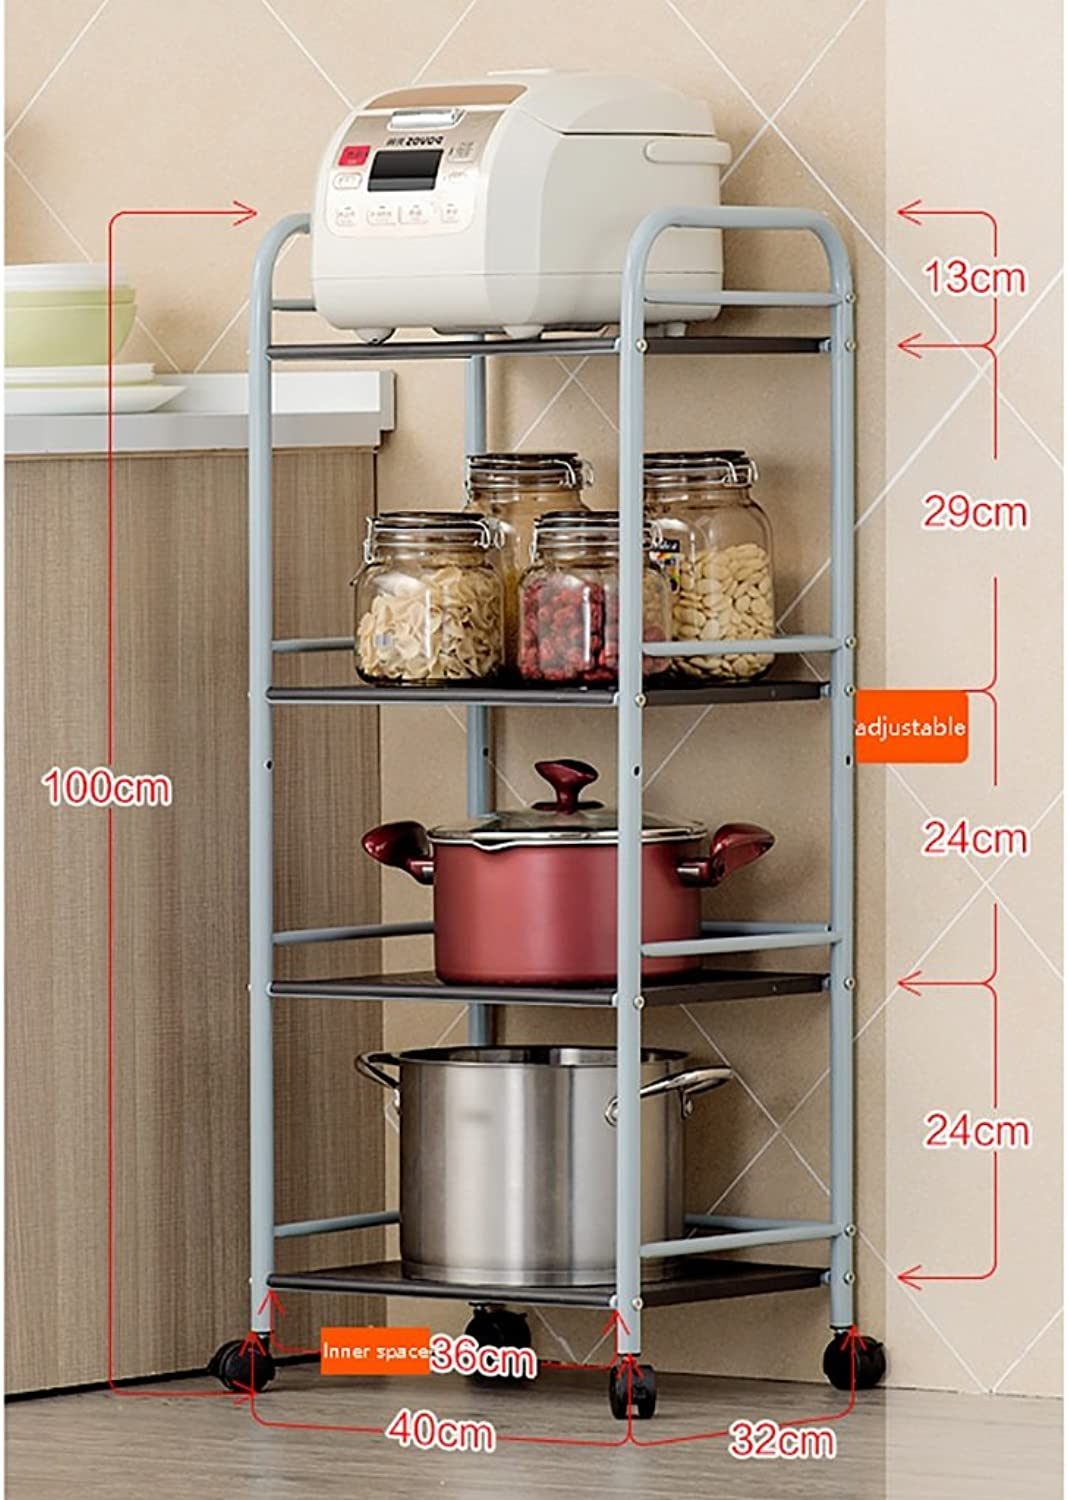 LXLA- Shelves Storage Shelf Microwave Oven Kitchen Can Move